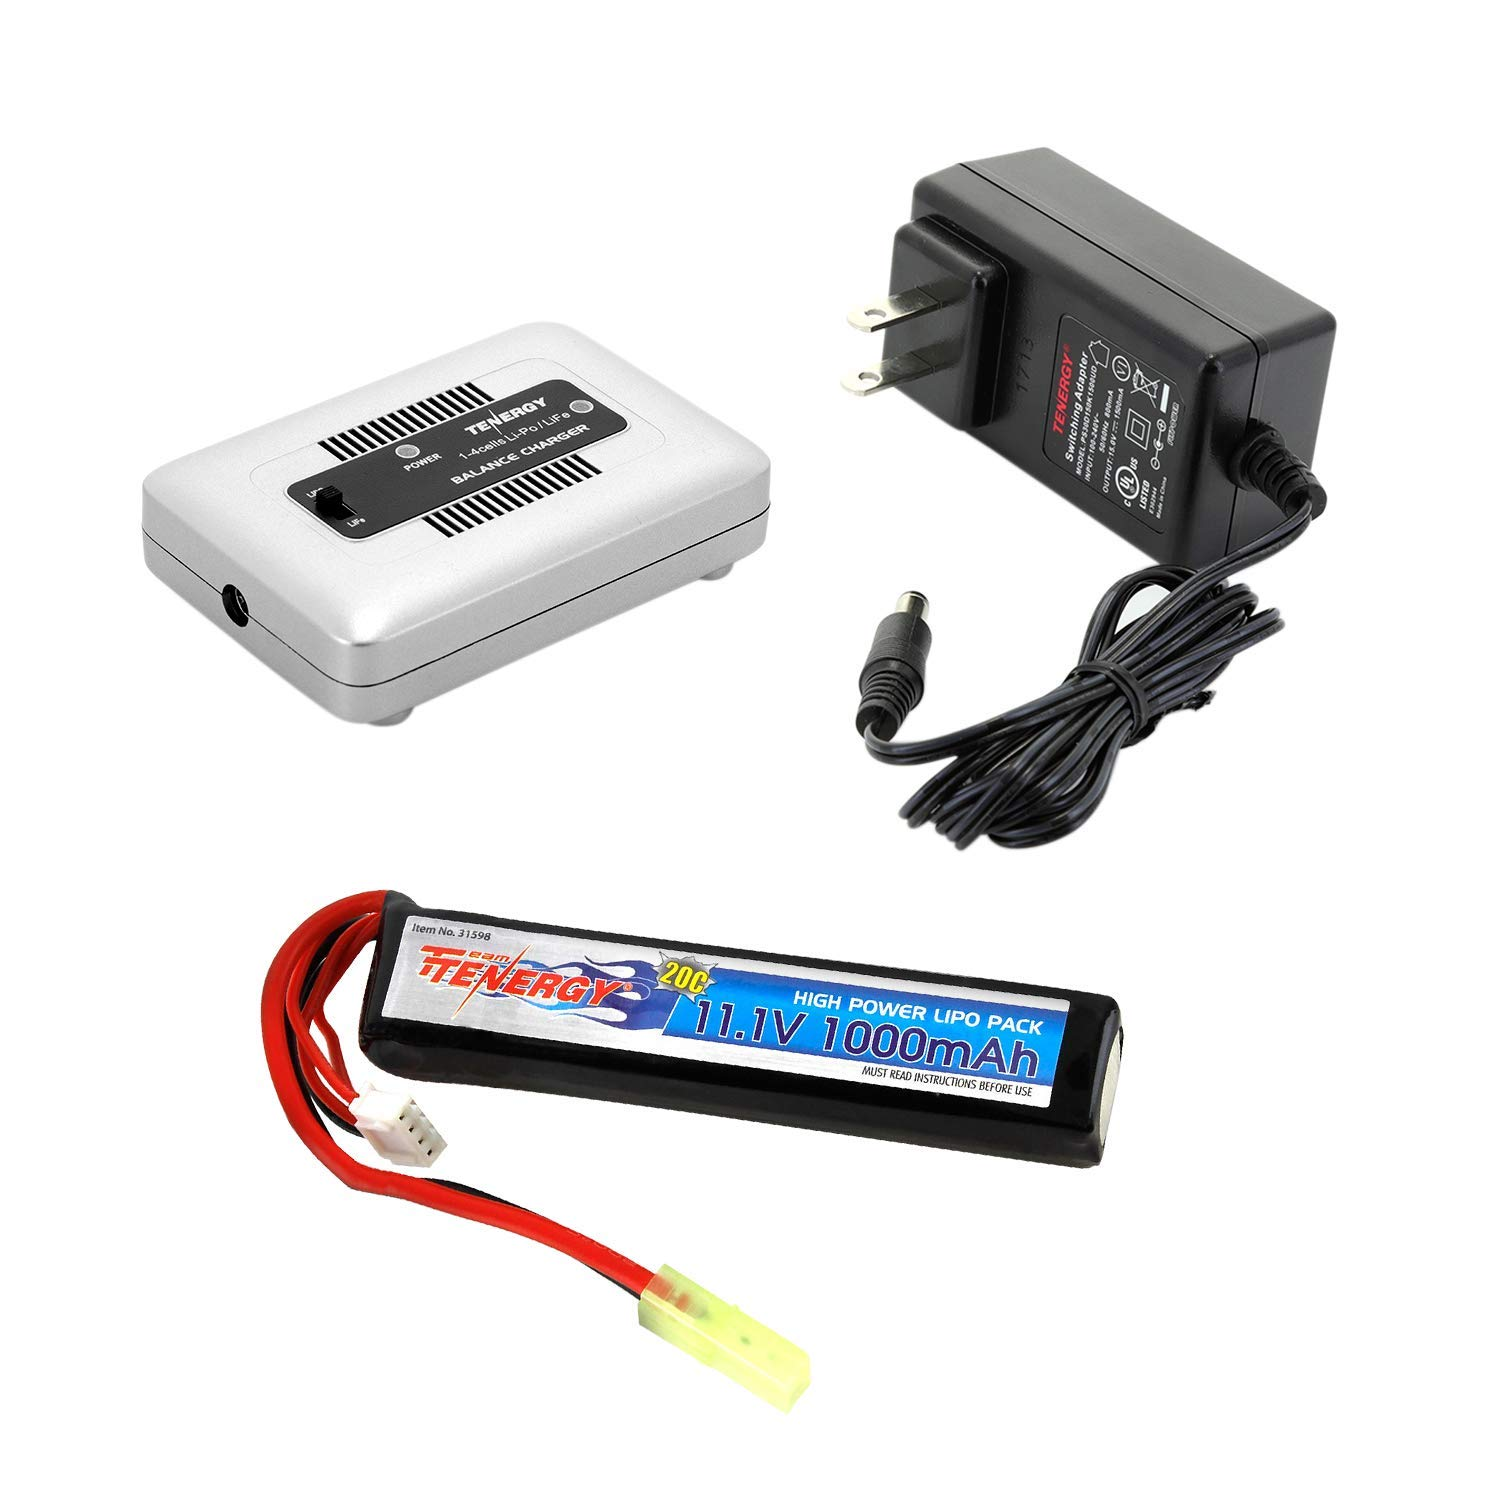 Tenergy Airsoft Battery 11.1V 1000mAh High Capacity LiPo Stick Battery Pack 20C High Discharge Rate Hobby Battery Pack for Airsoft Guns w/Mini Tamiya Connector + LiPo/LiFe Balance Charger 1-4 Cells